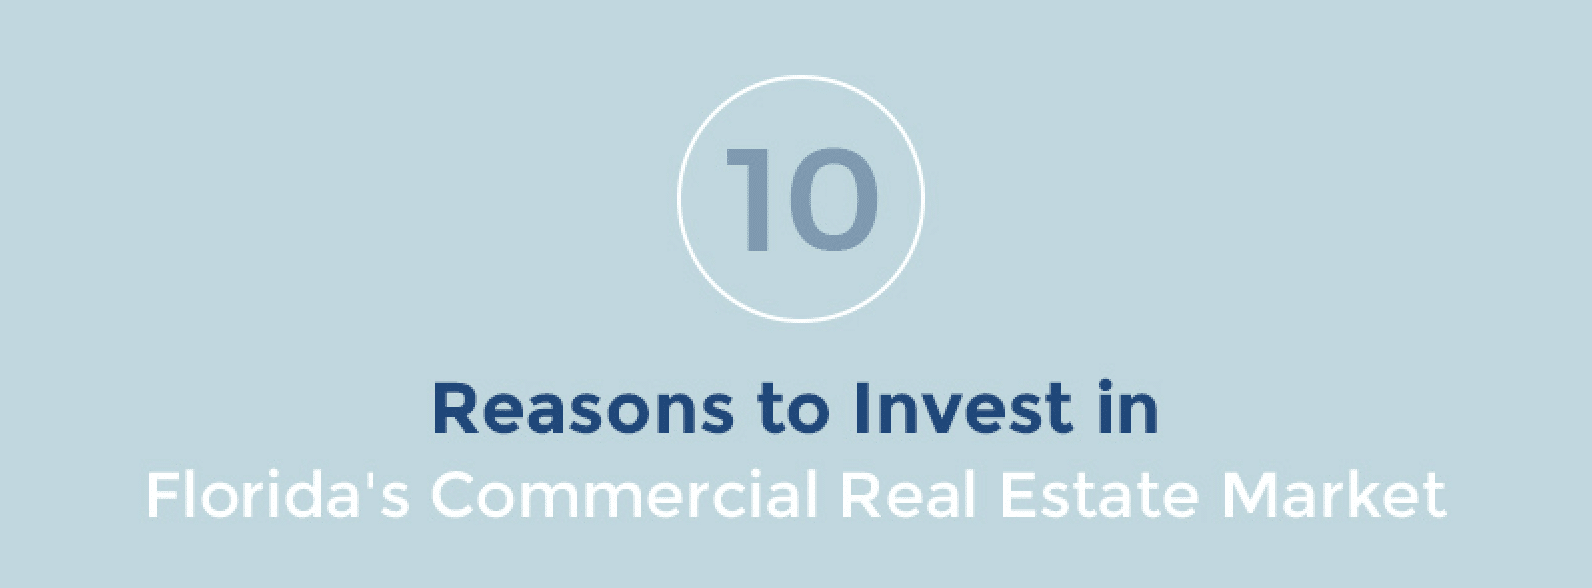 10+ Reasons to Invest in Florida Commercial Real Estate